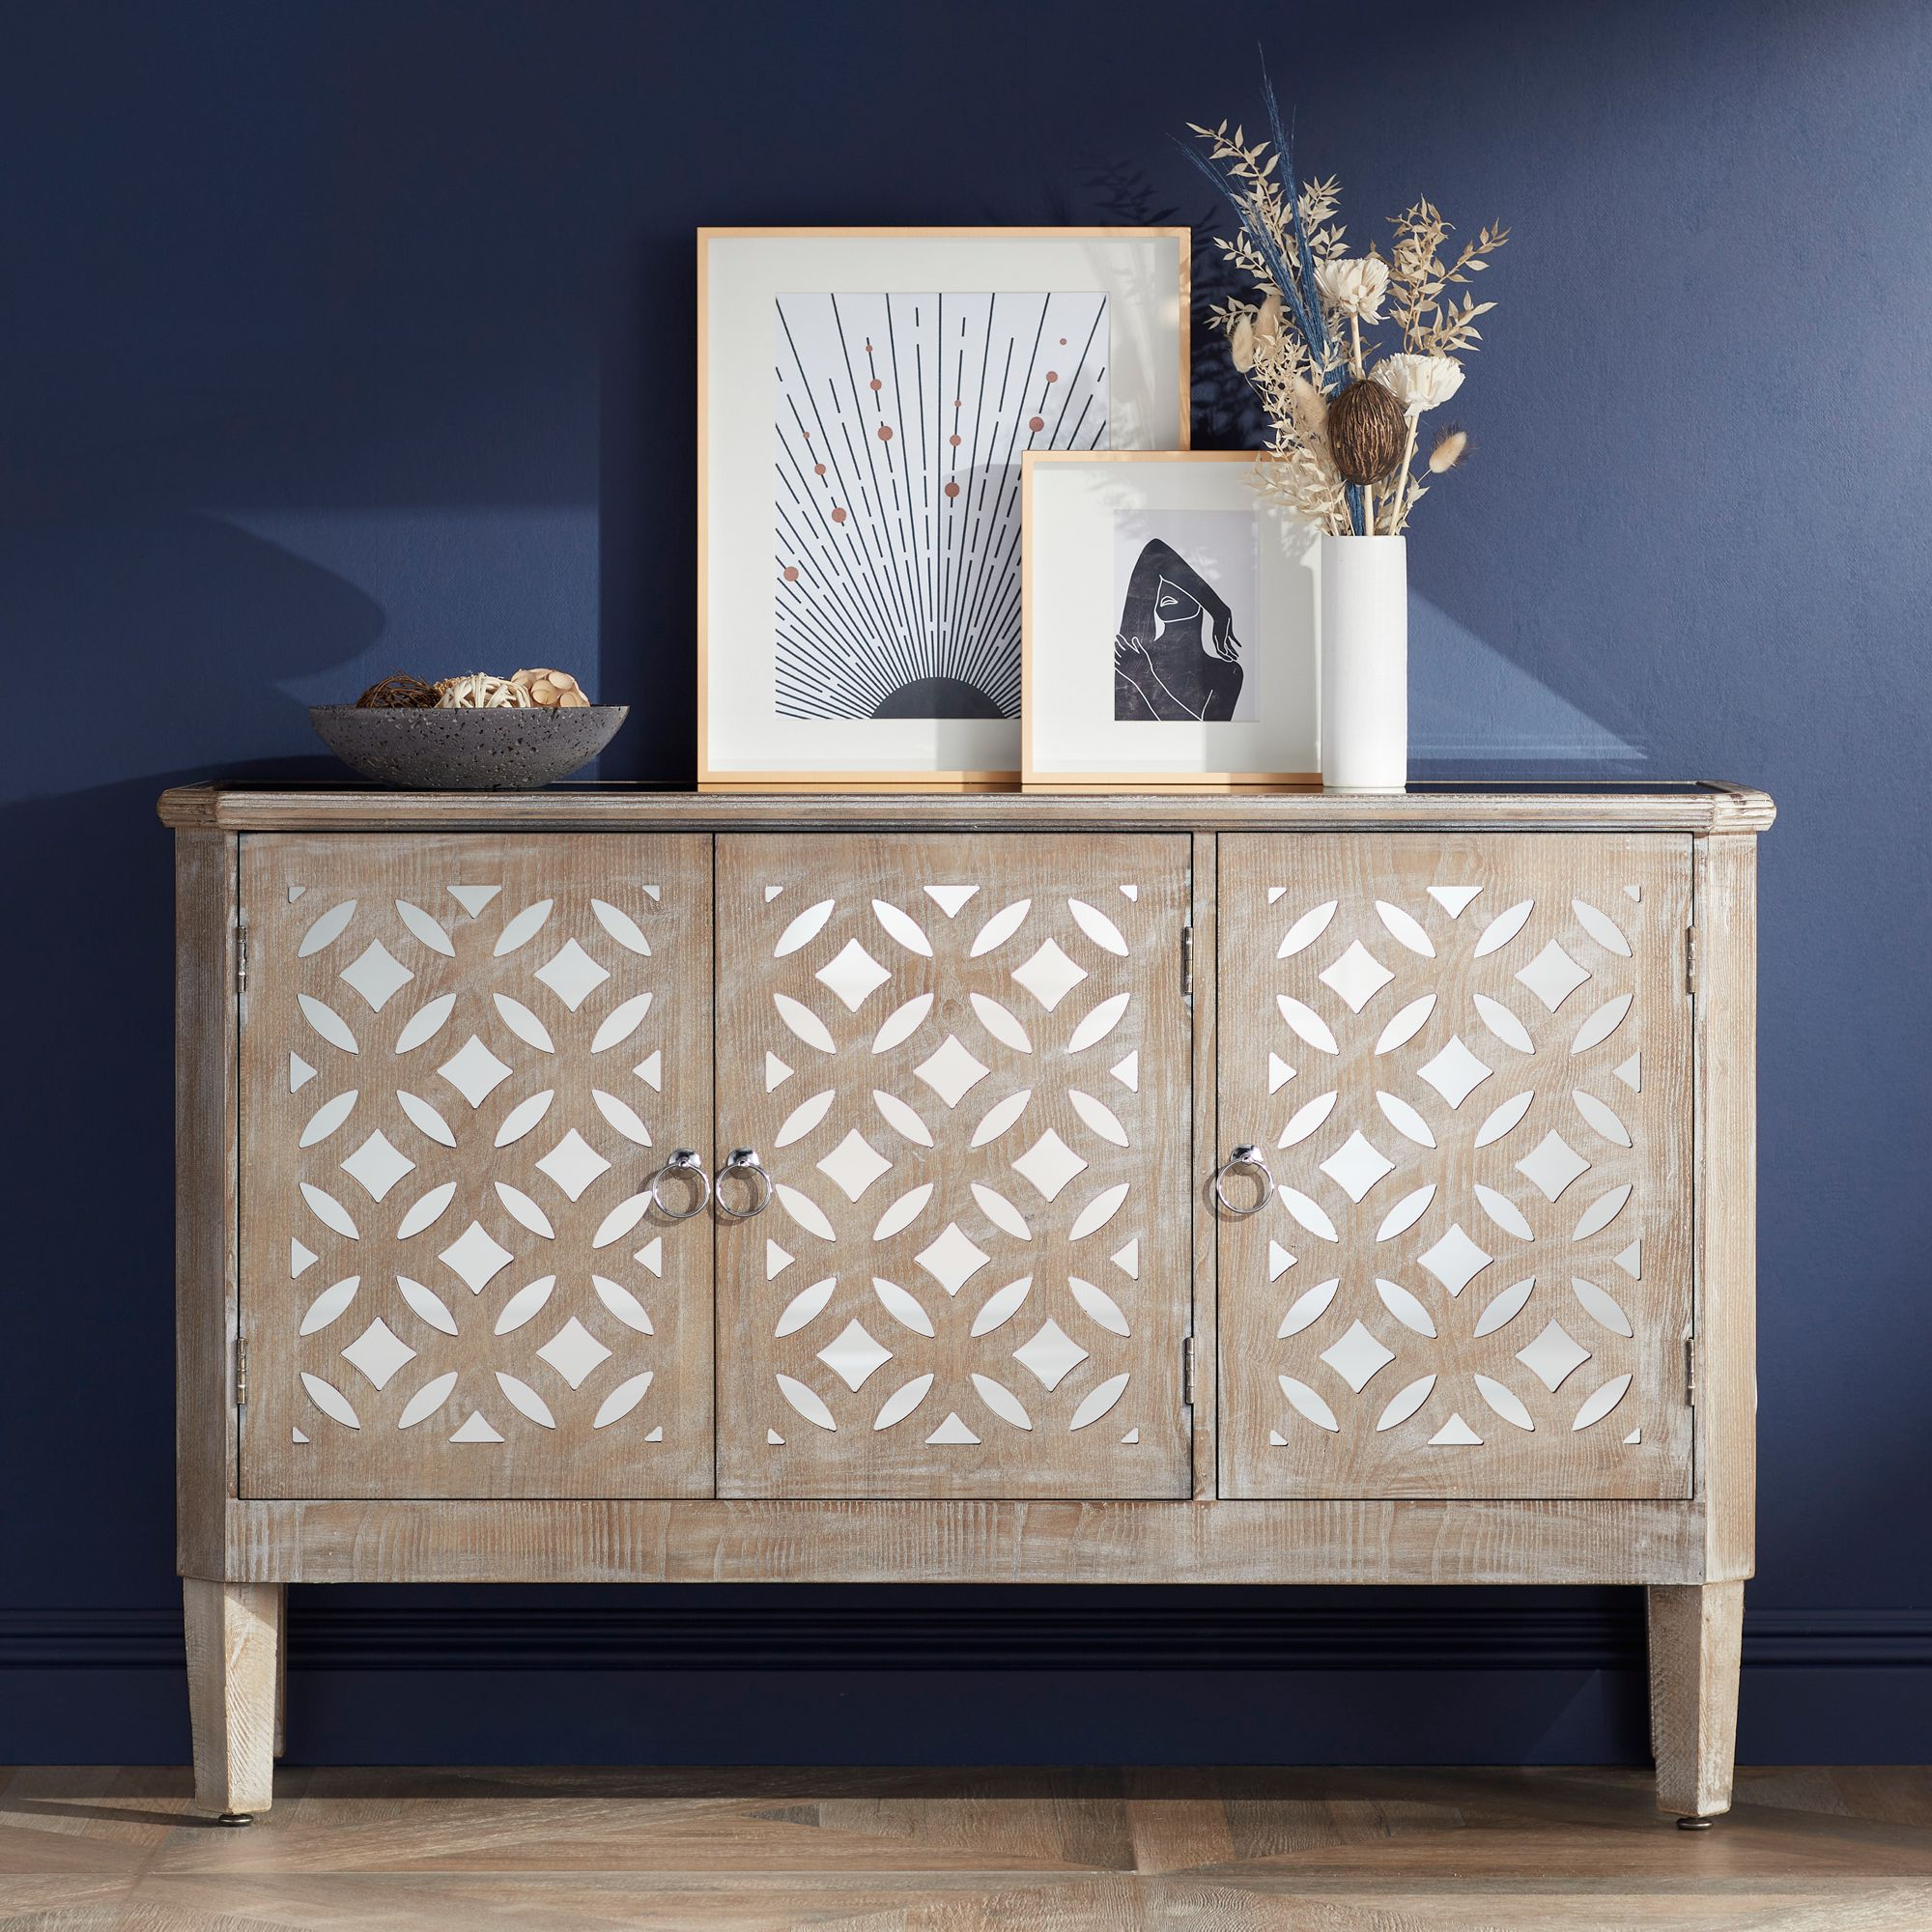 Bon Charly Natural Whitewash 3 Door Lattice Accent Cabinet